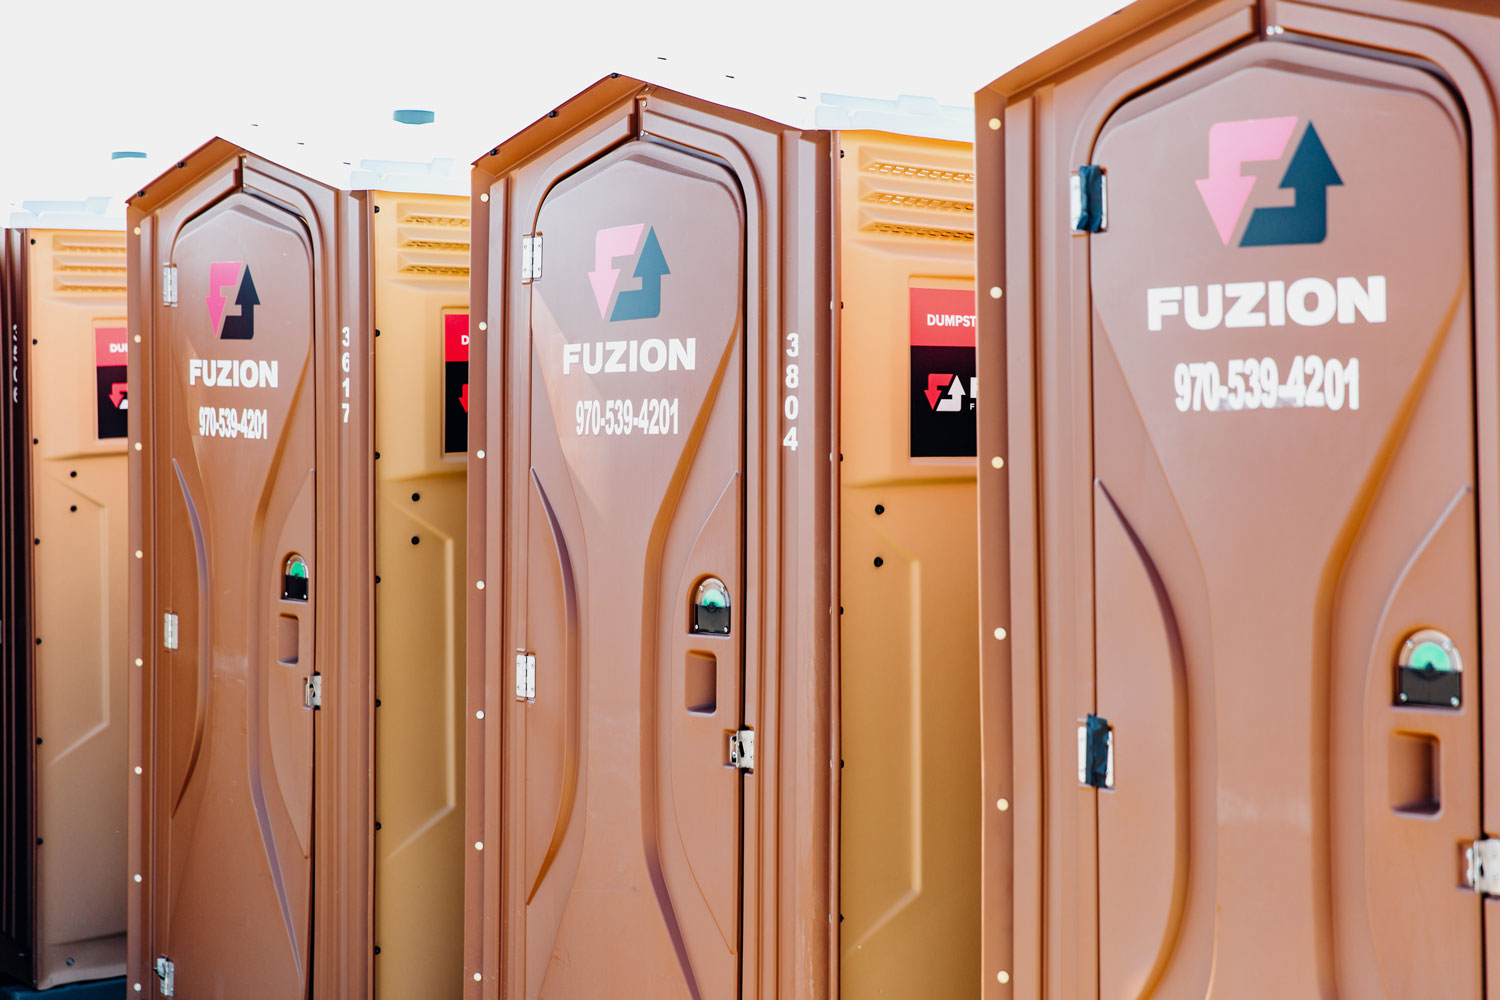 Portable Restrooms - Fuzion